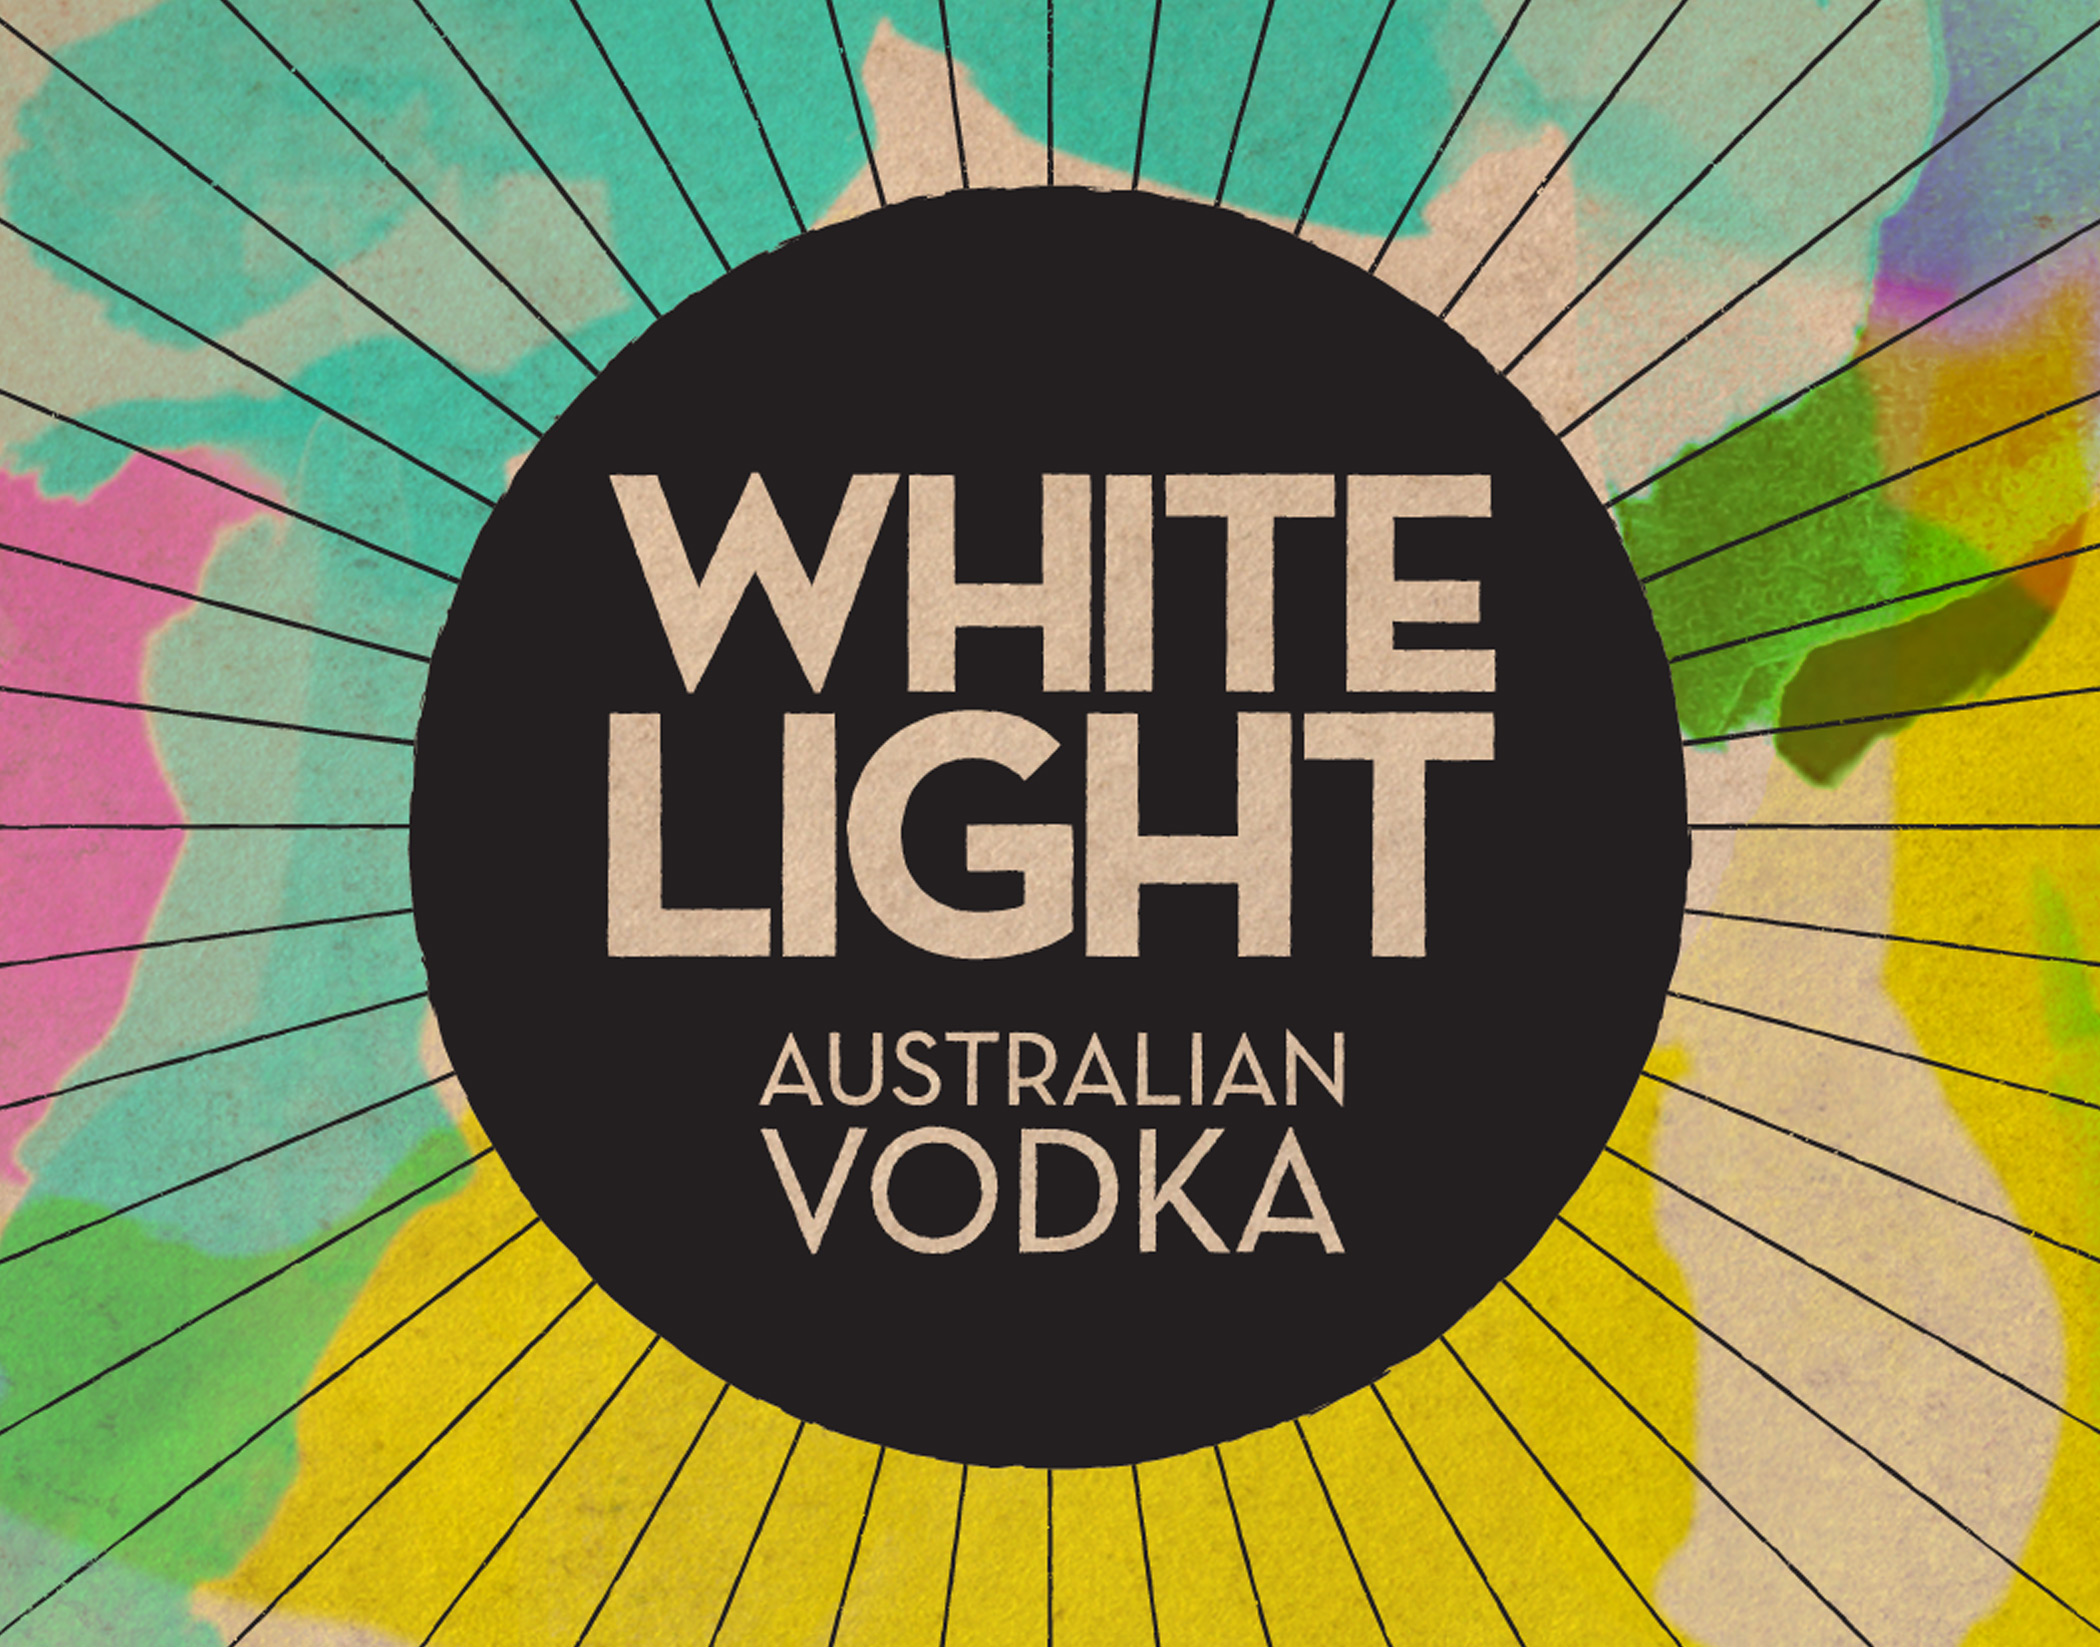 Research Vodka. See the White Light.